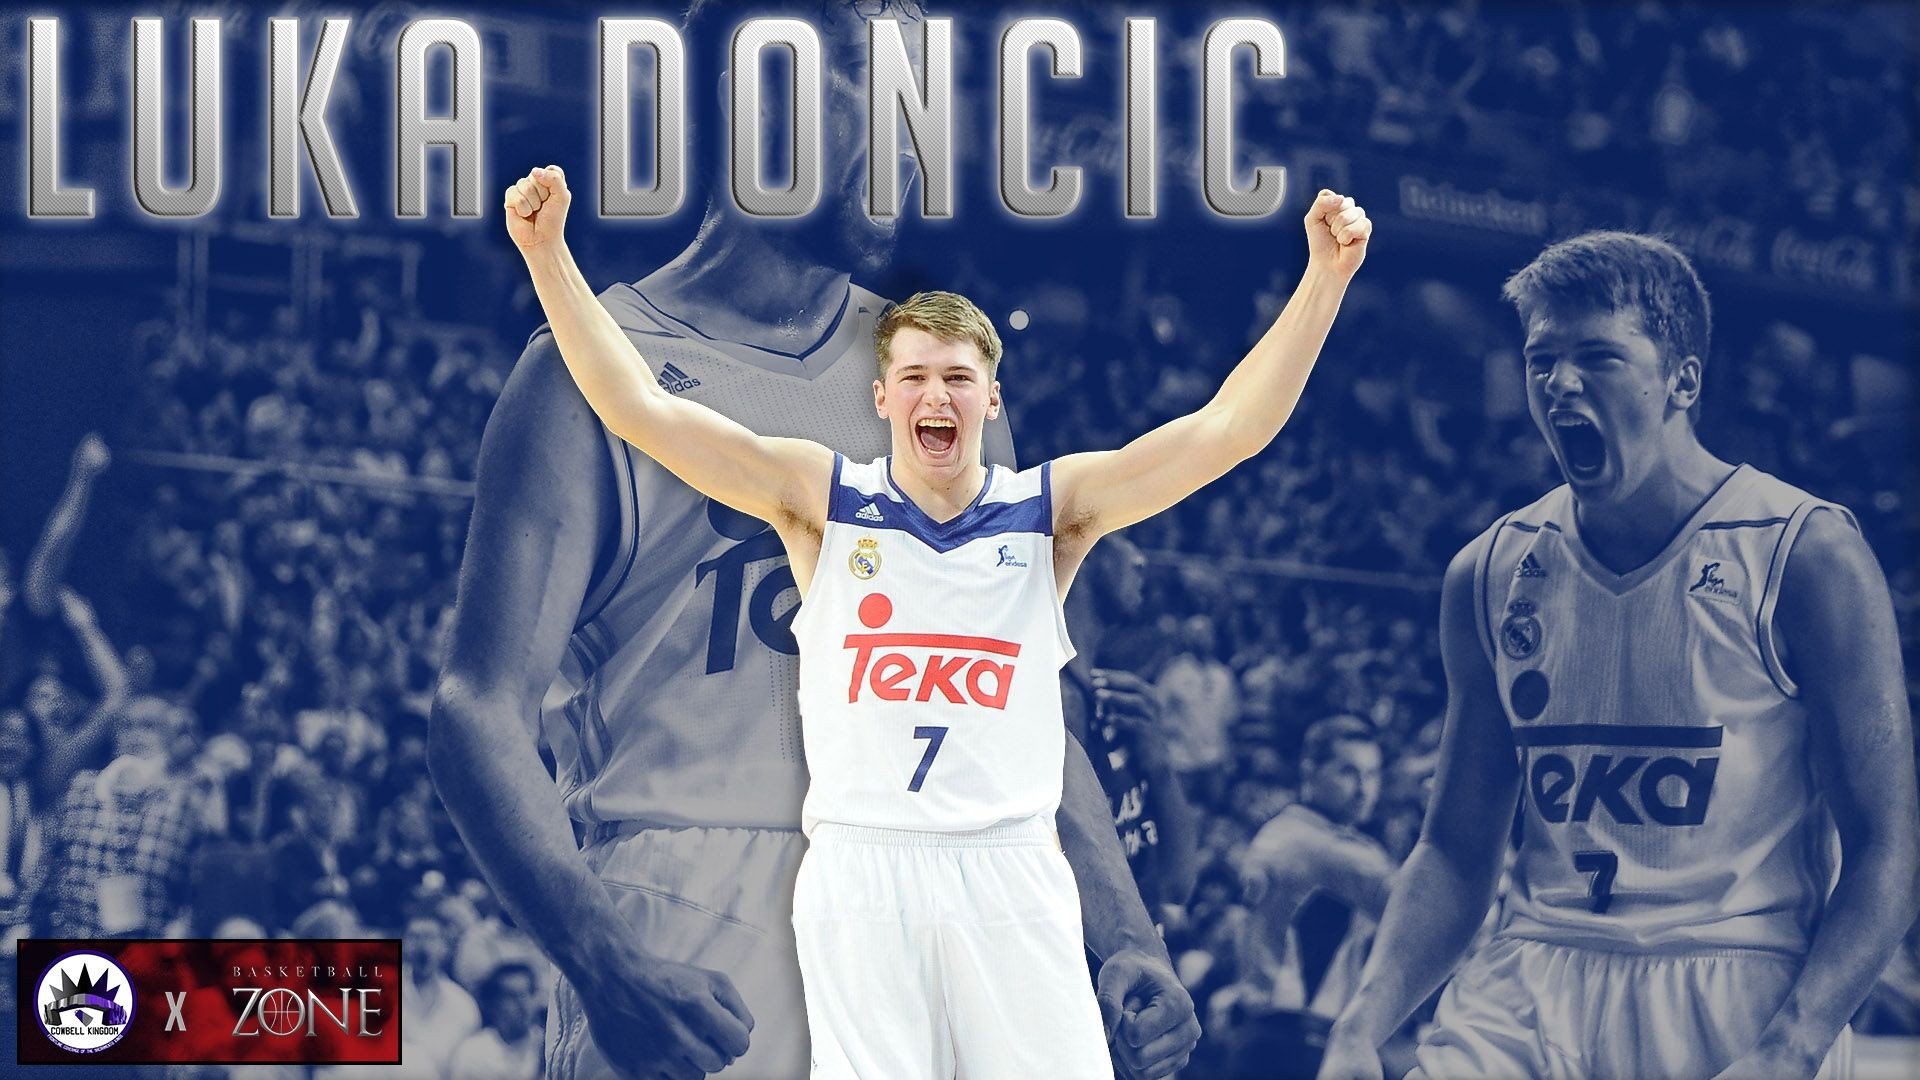 Luka Doncic ReactionCommentary Vs Estudiantes In ACB